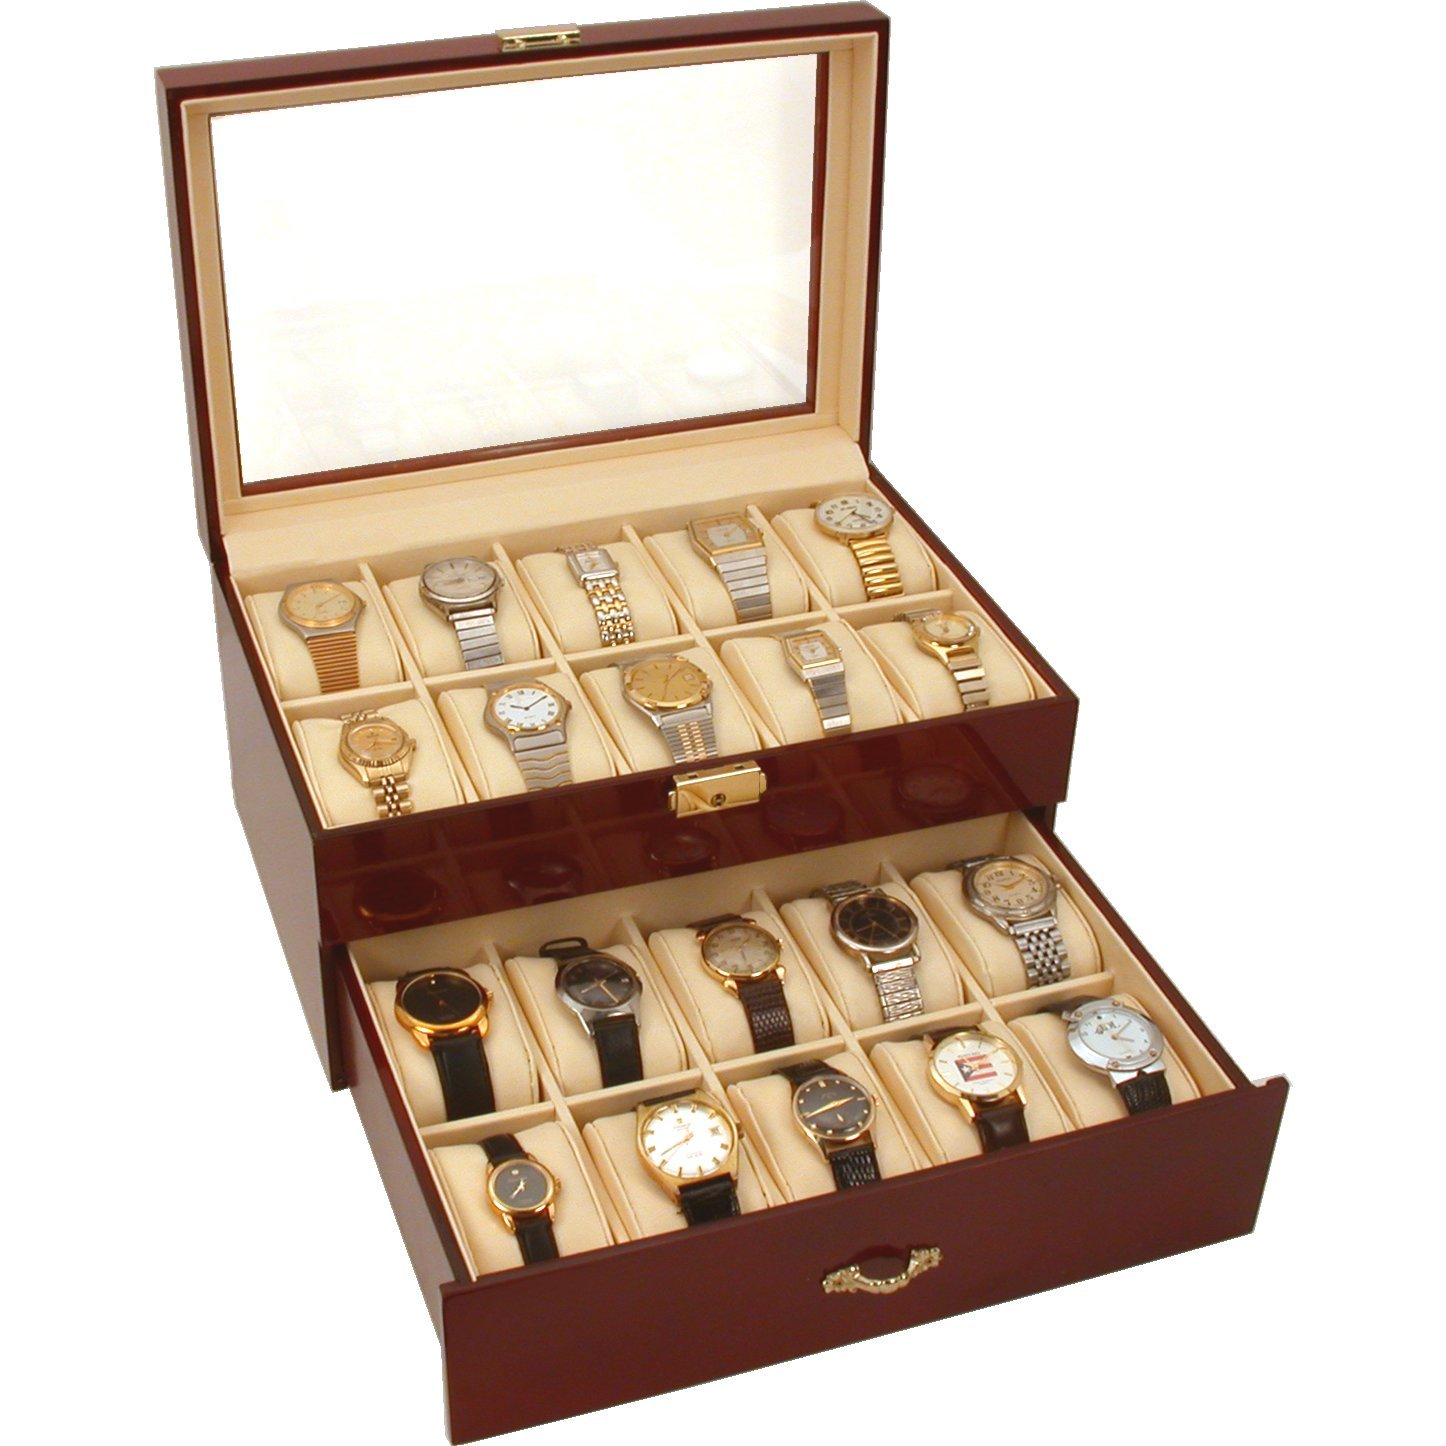 20 Watch Display Case Cherry Wood Color Clear Top Box